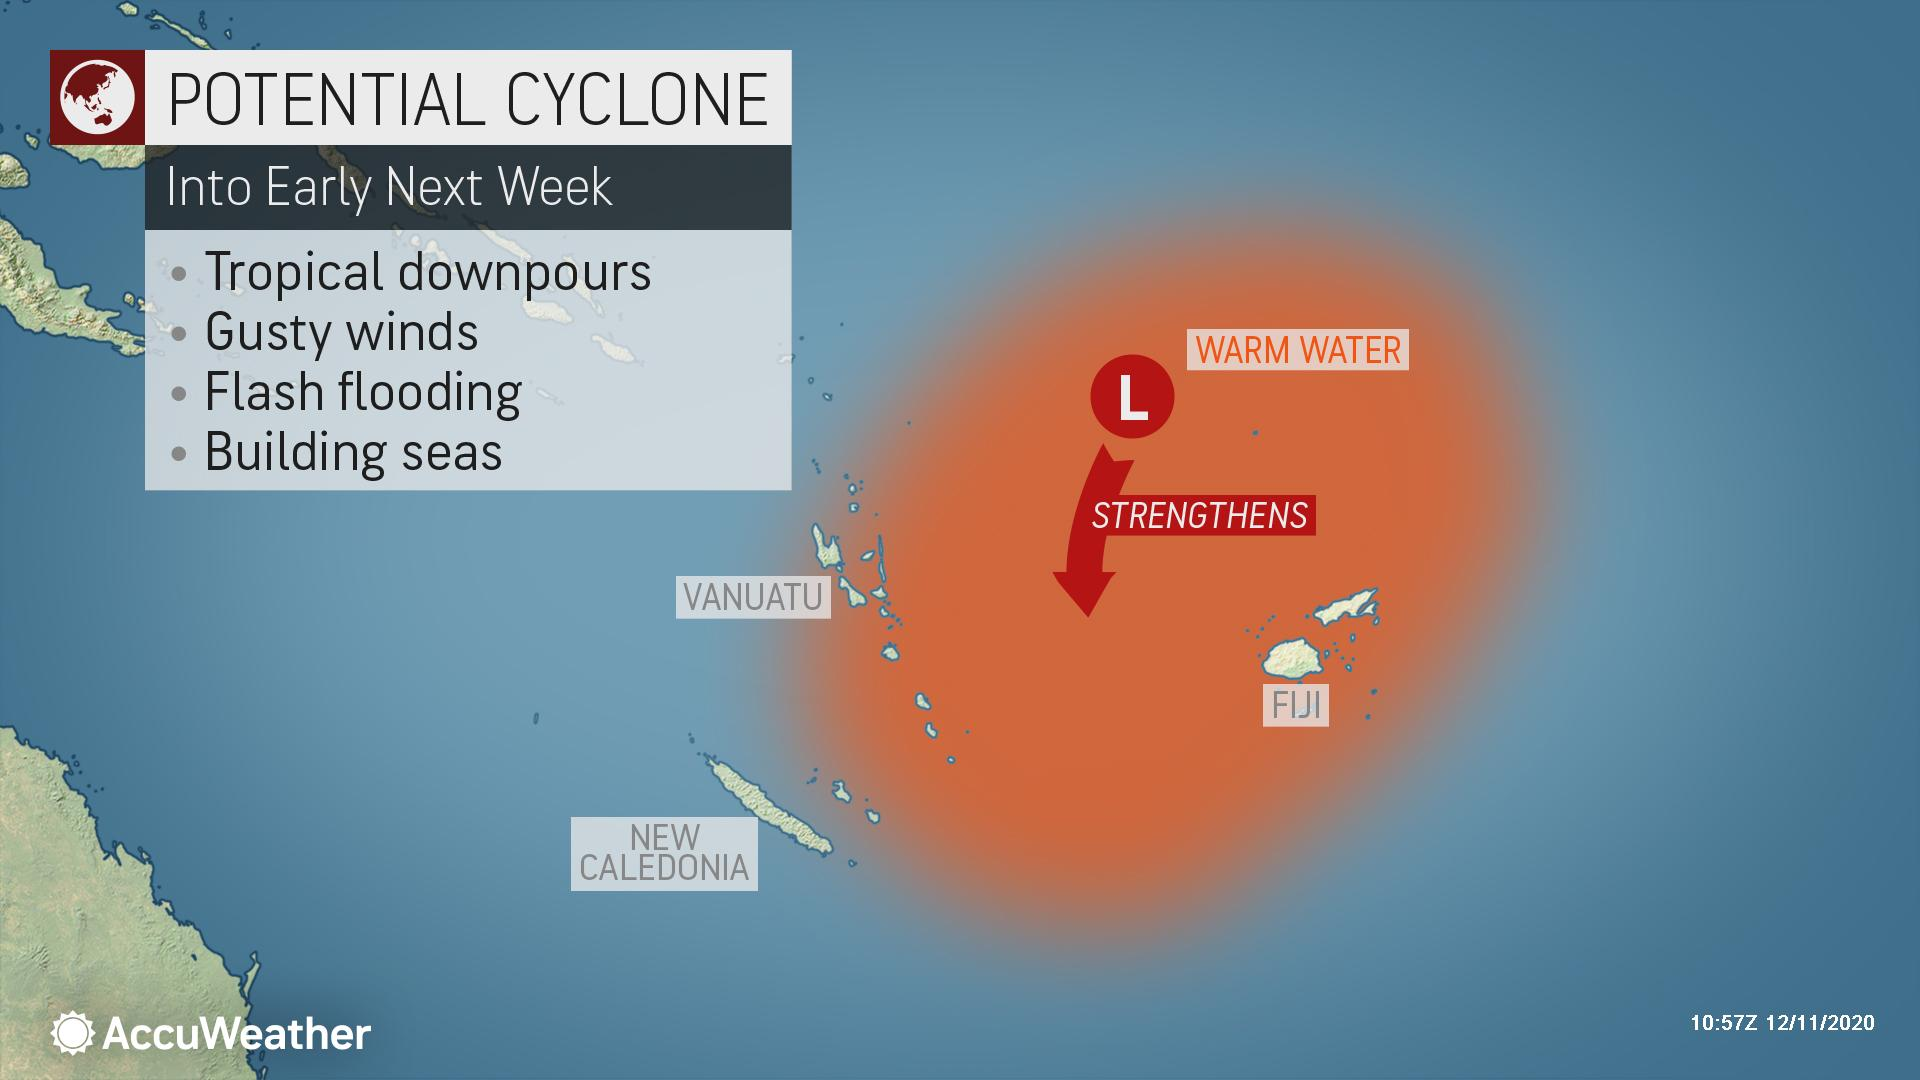 Fiji Vanuatu May Be Threatened By First South Pacific Tropical Cyclone Of The Season Accuweather